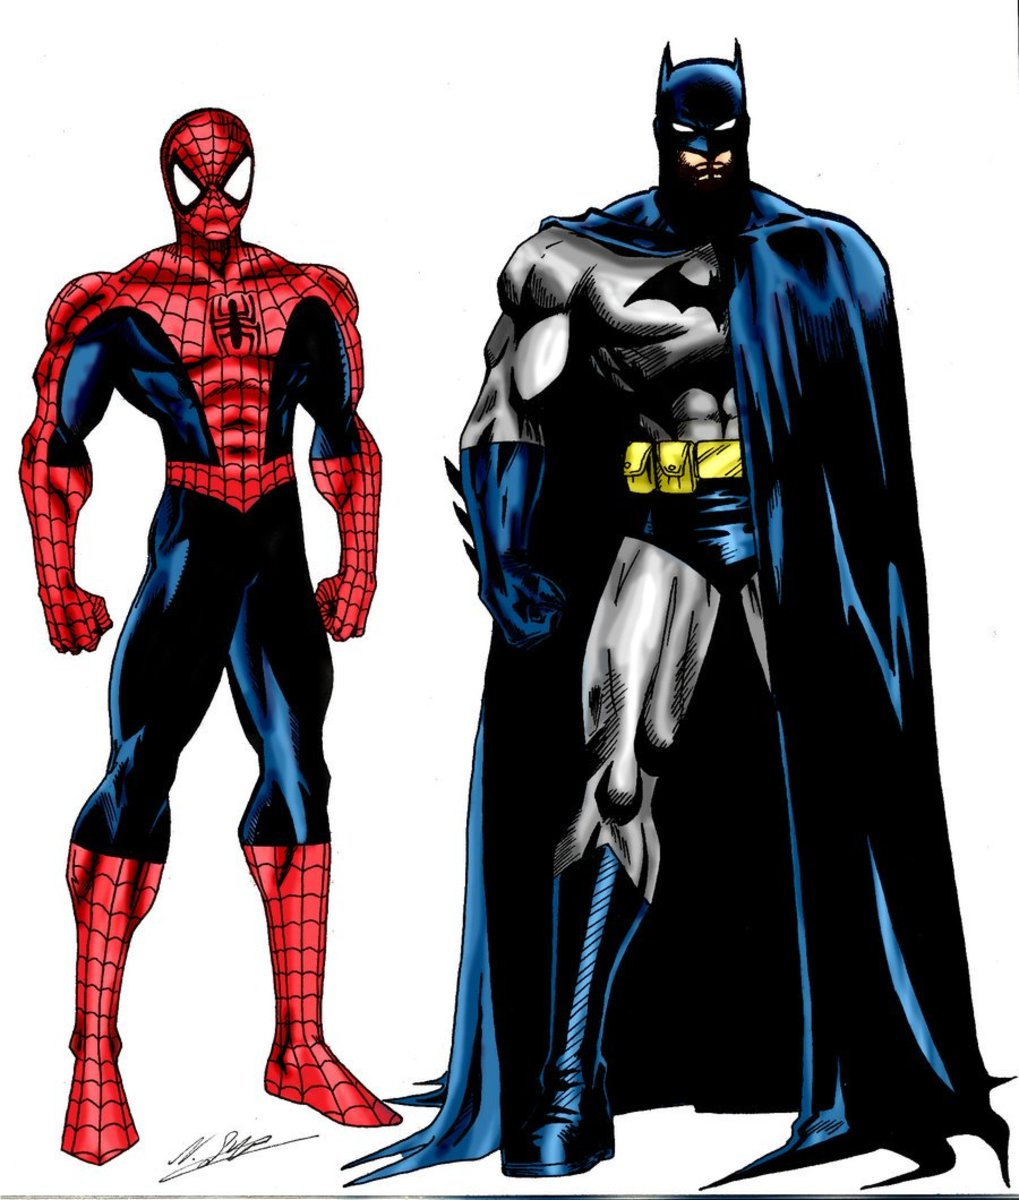 10 Reasons Why Spiderman Is Better Than Batman | HobbyLark